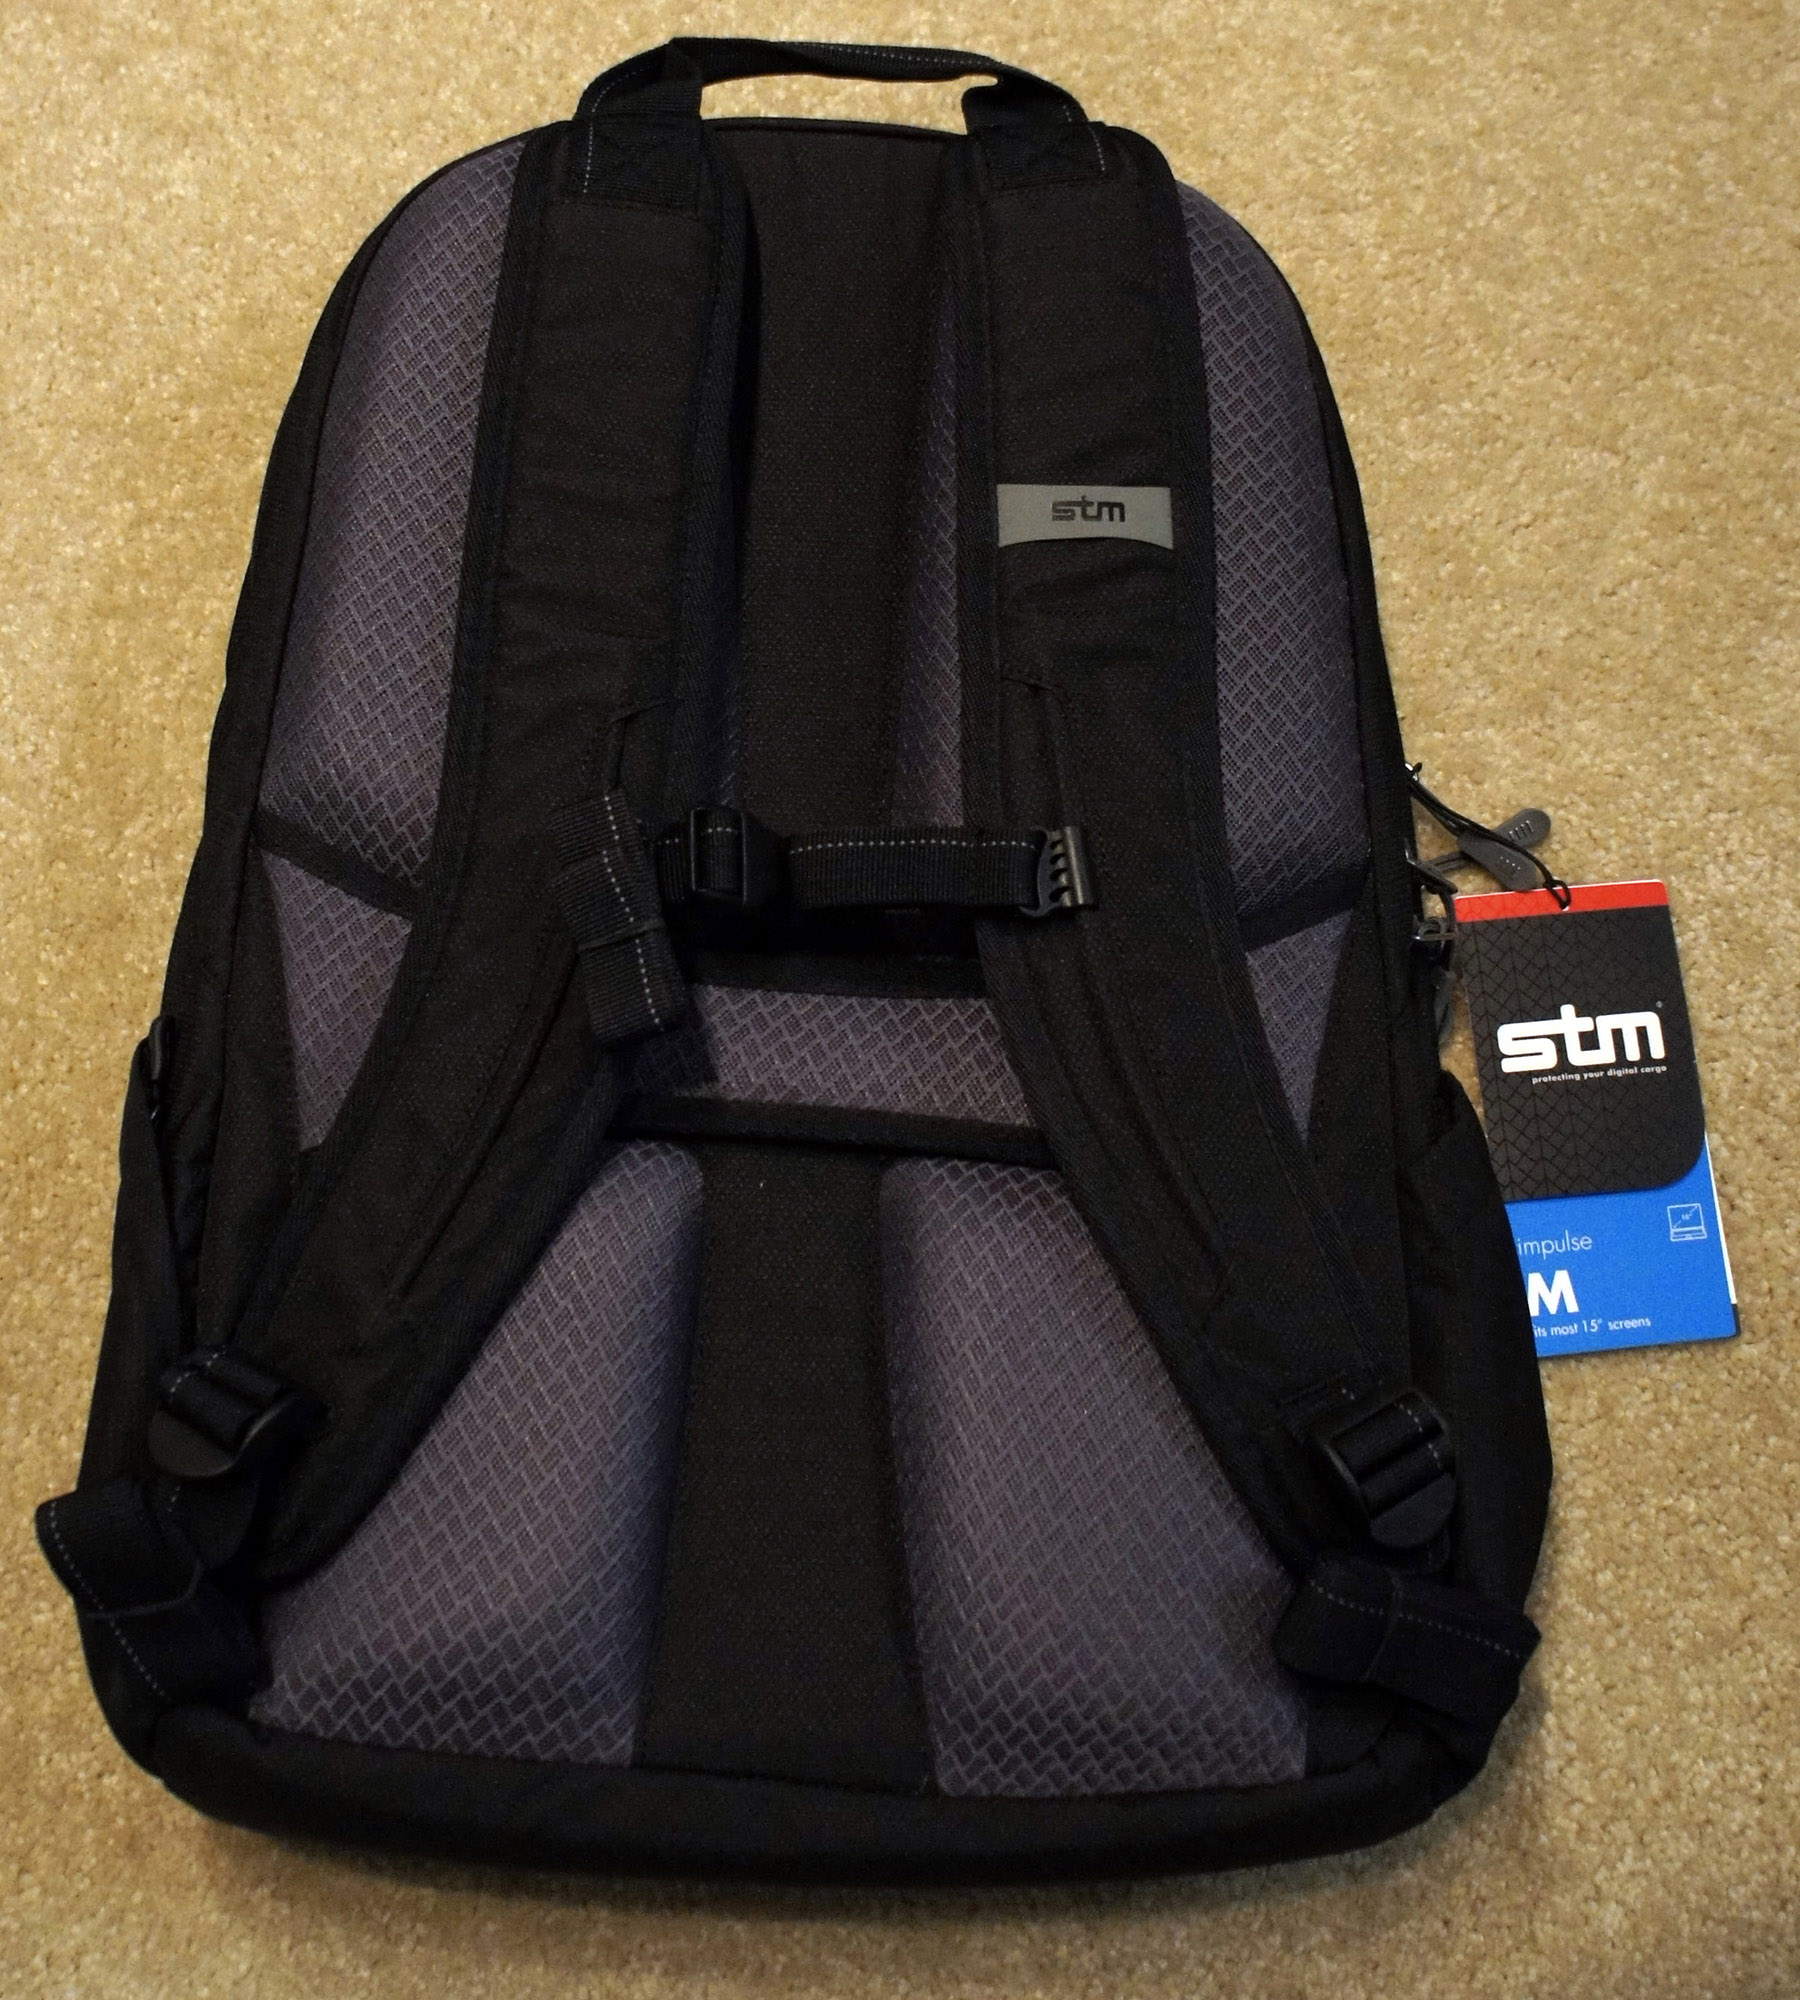 STM Bags Impulse Medium